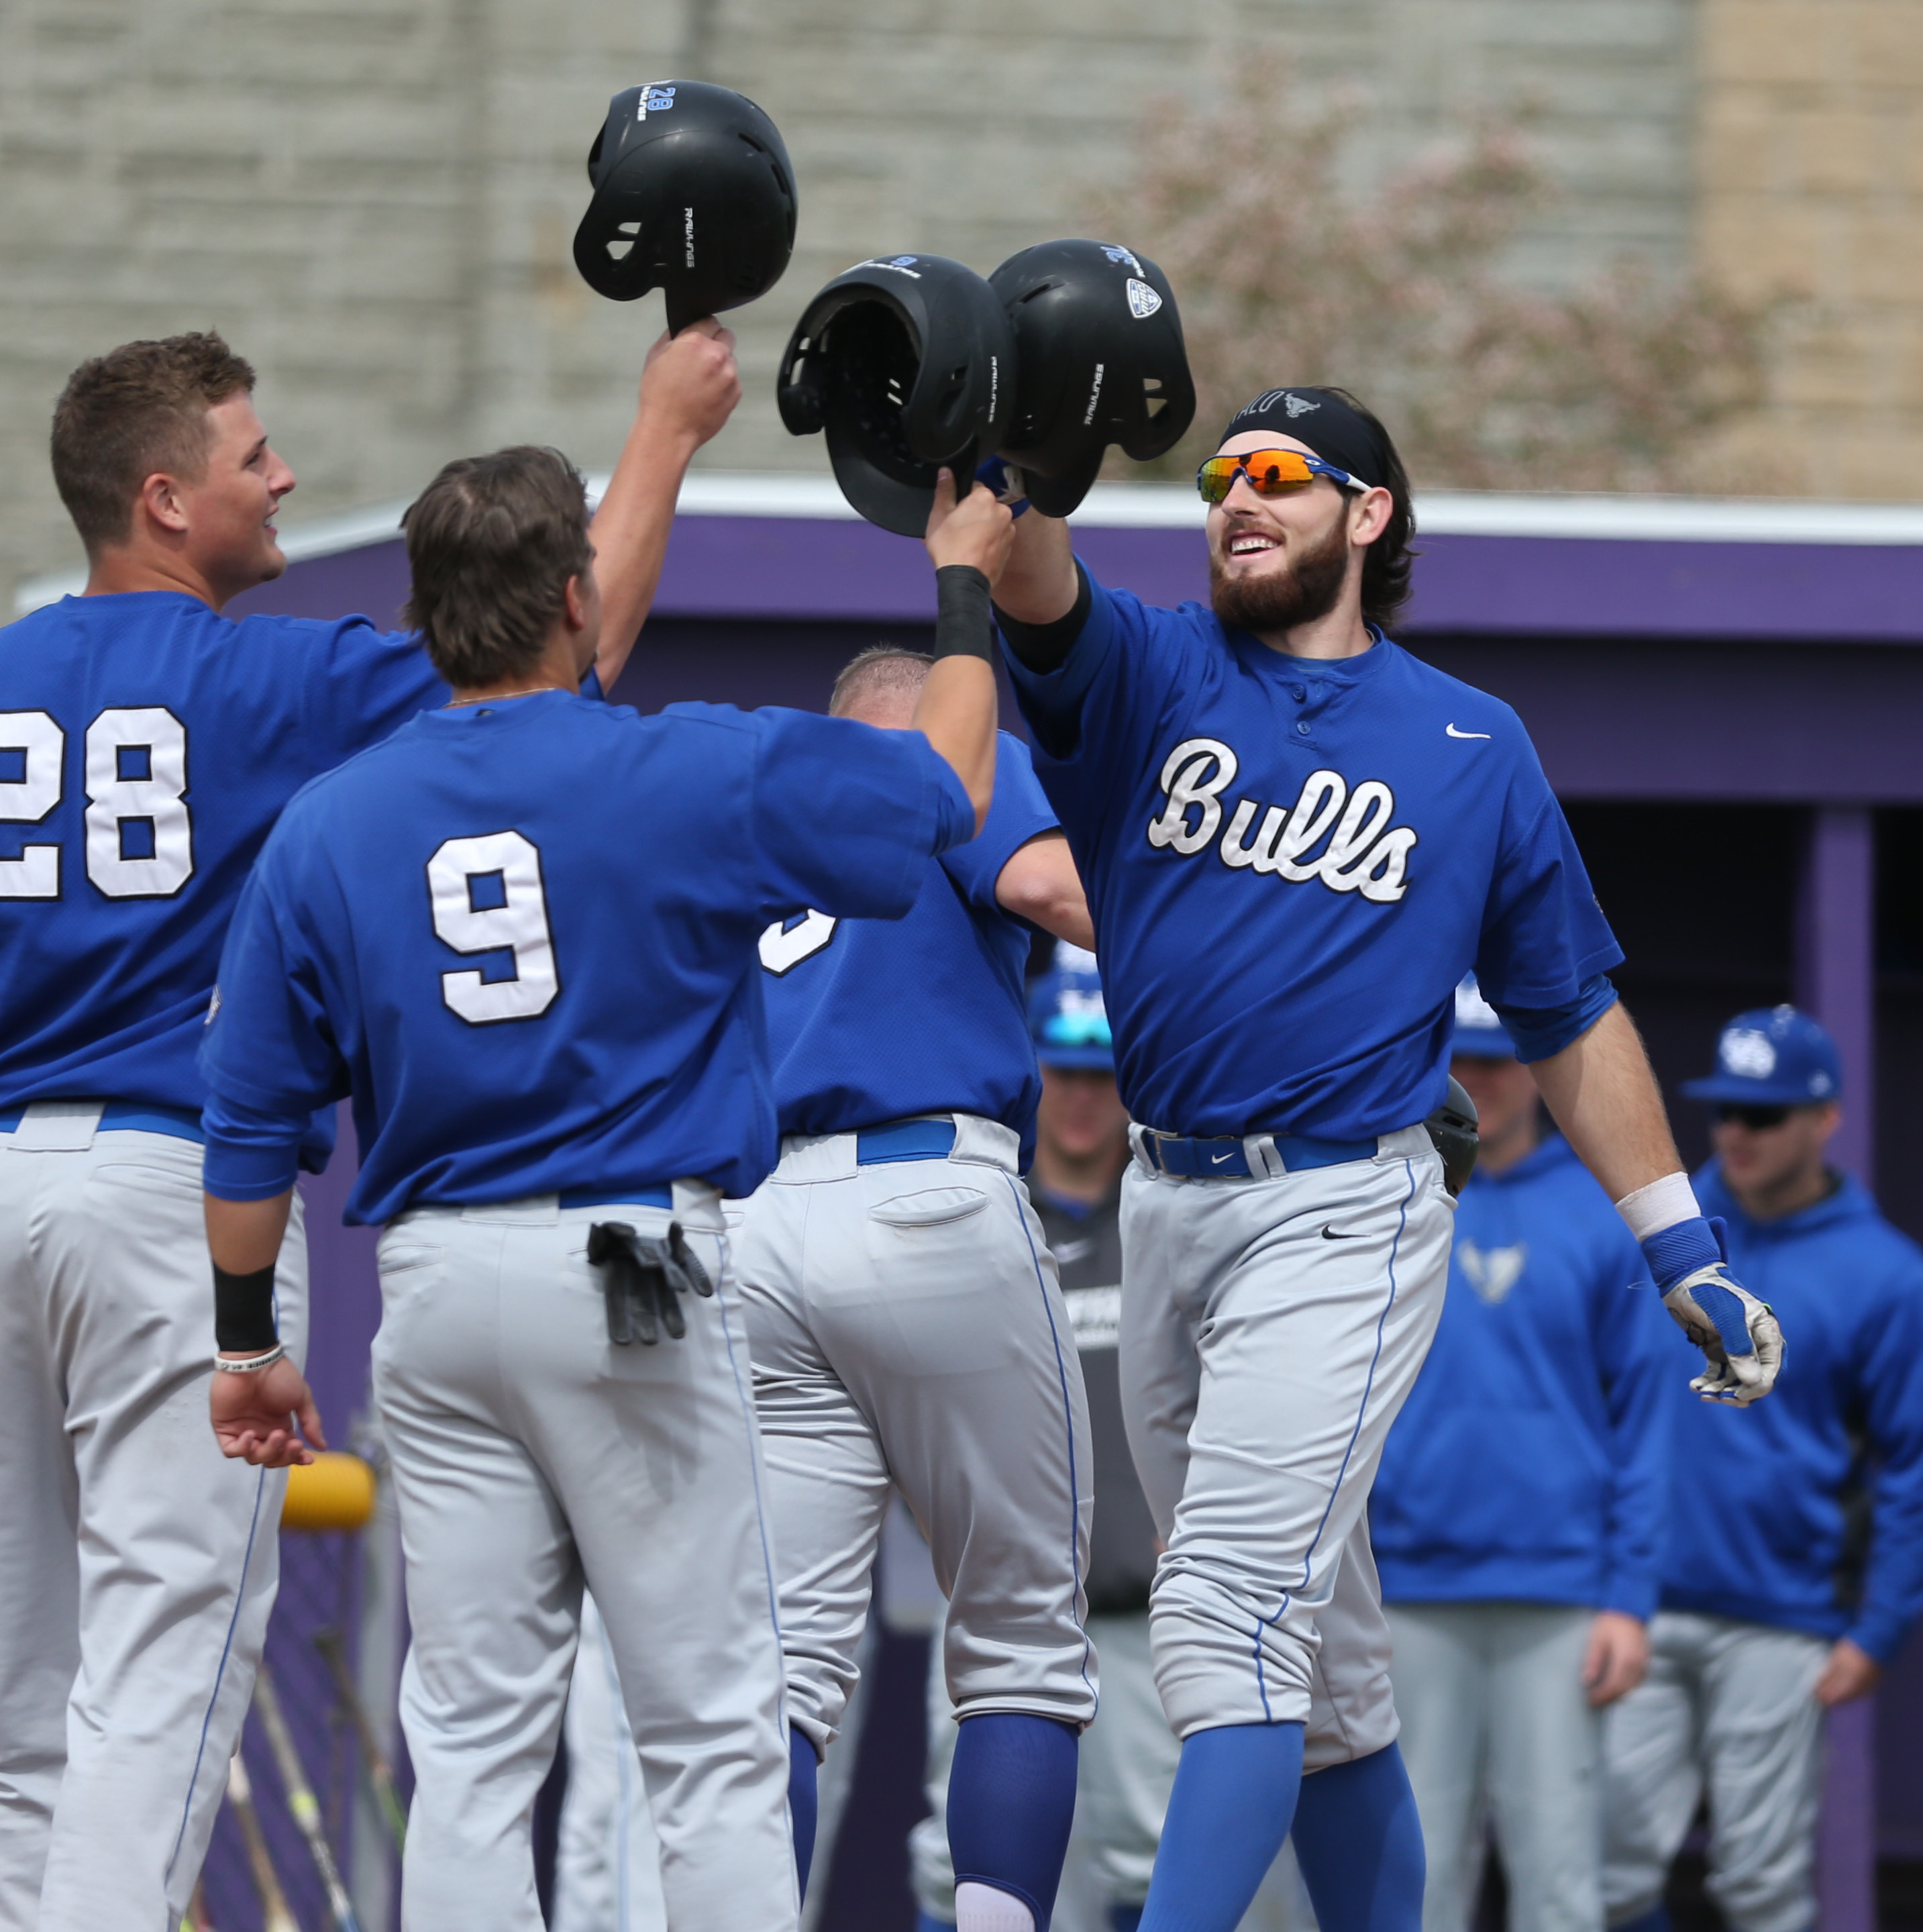 UB's Kyle Brennan is congratulated by his teammates after hitting a grand slam in the first inning at Niagara University. (James P. McCoy/Buffalo News)